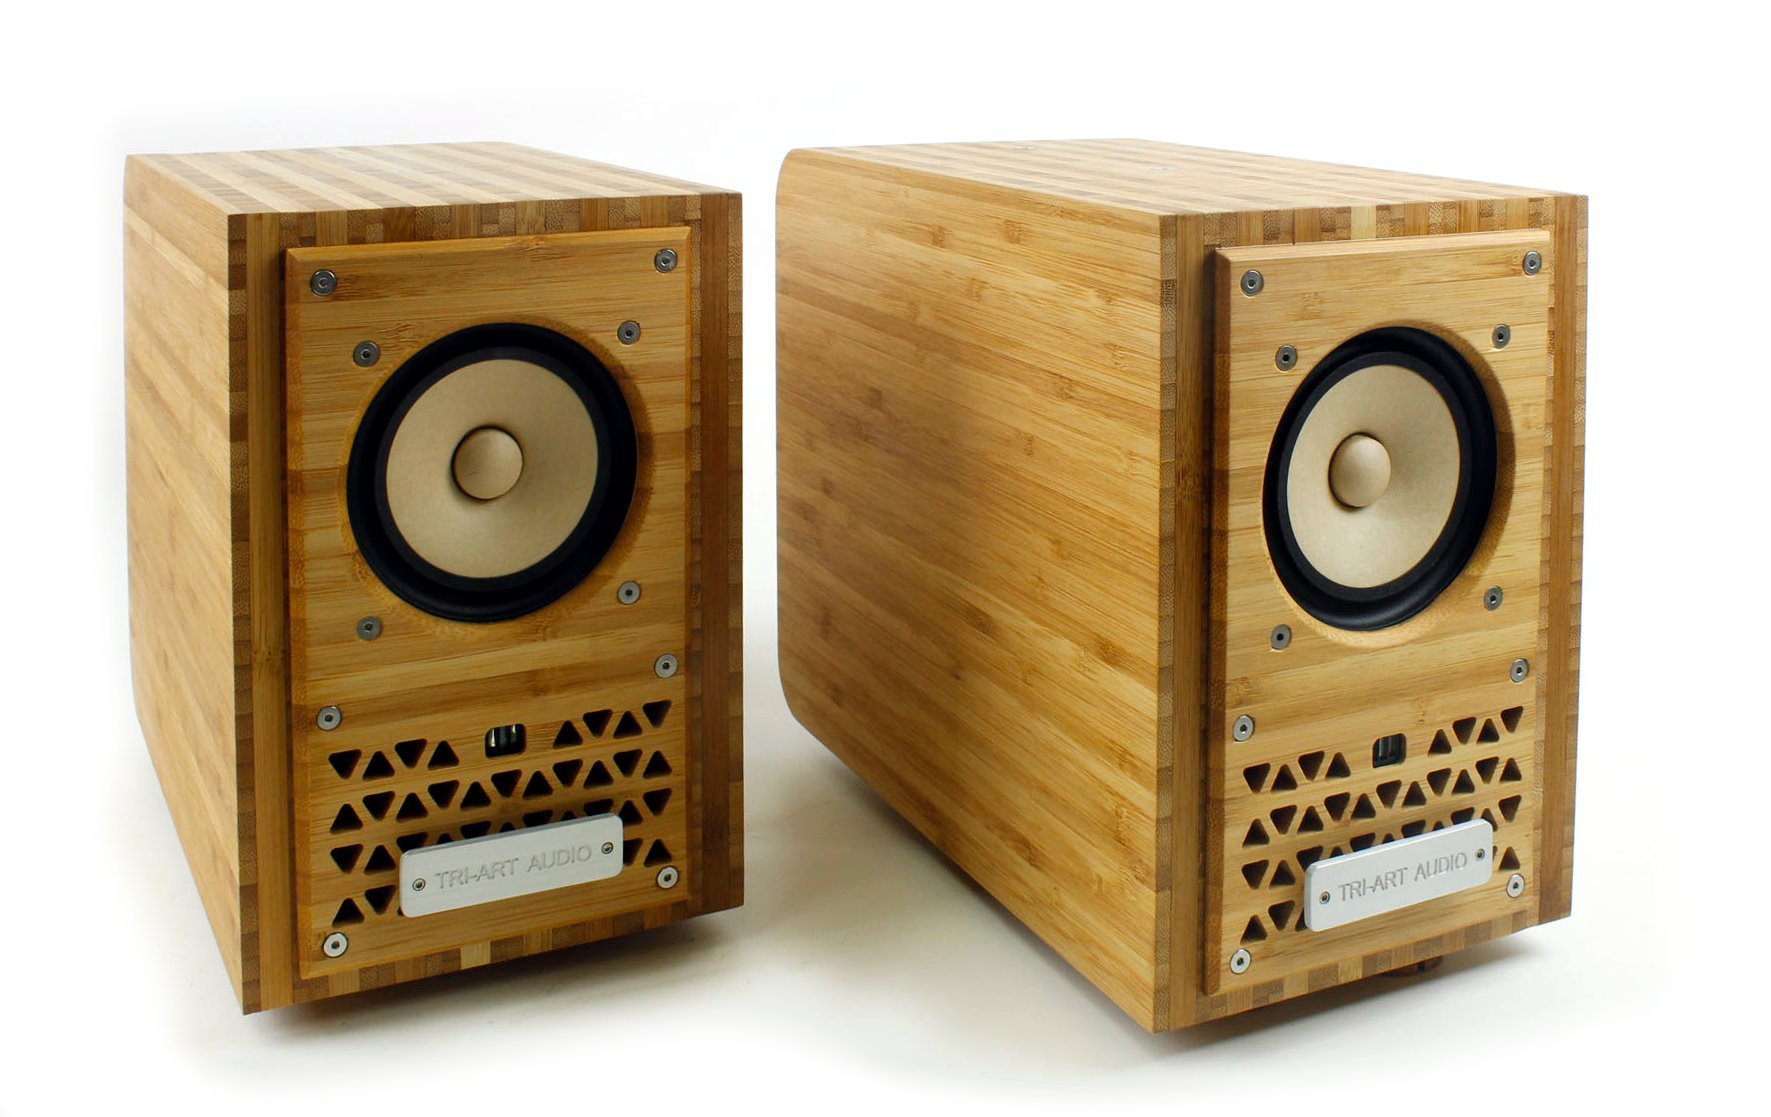 Tri-Art Audio Mini Monitor speakers